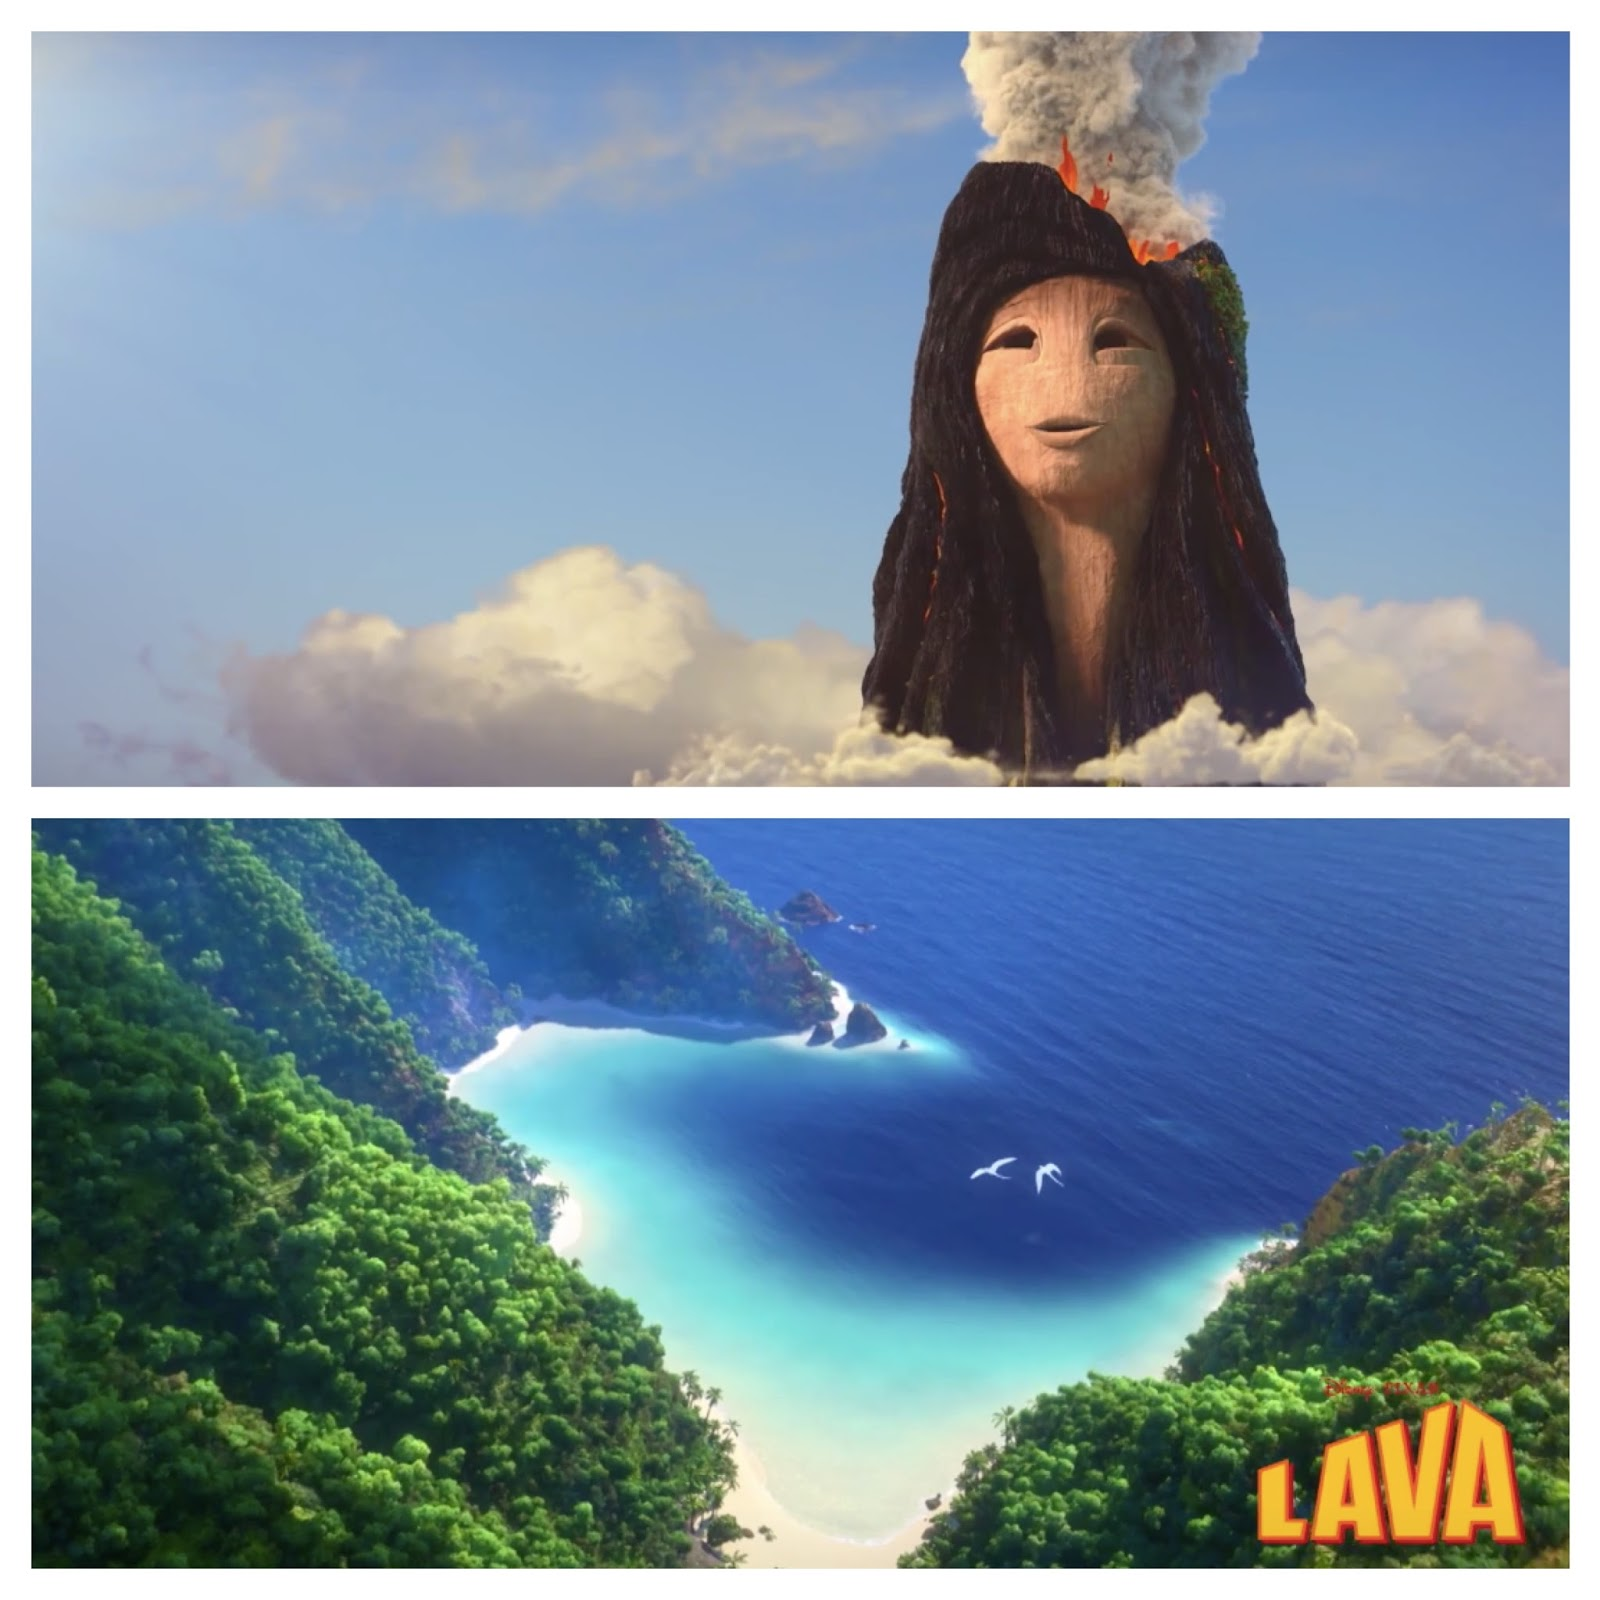 Inside Out 2015 Film: Lava: A Behind-the-Scenes Short Film Documentary